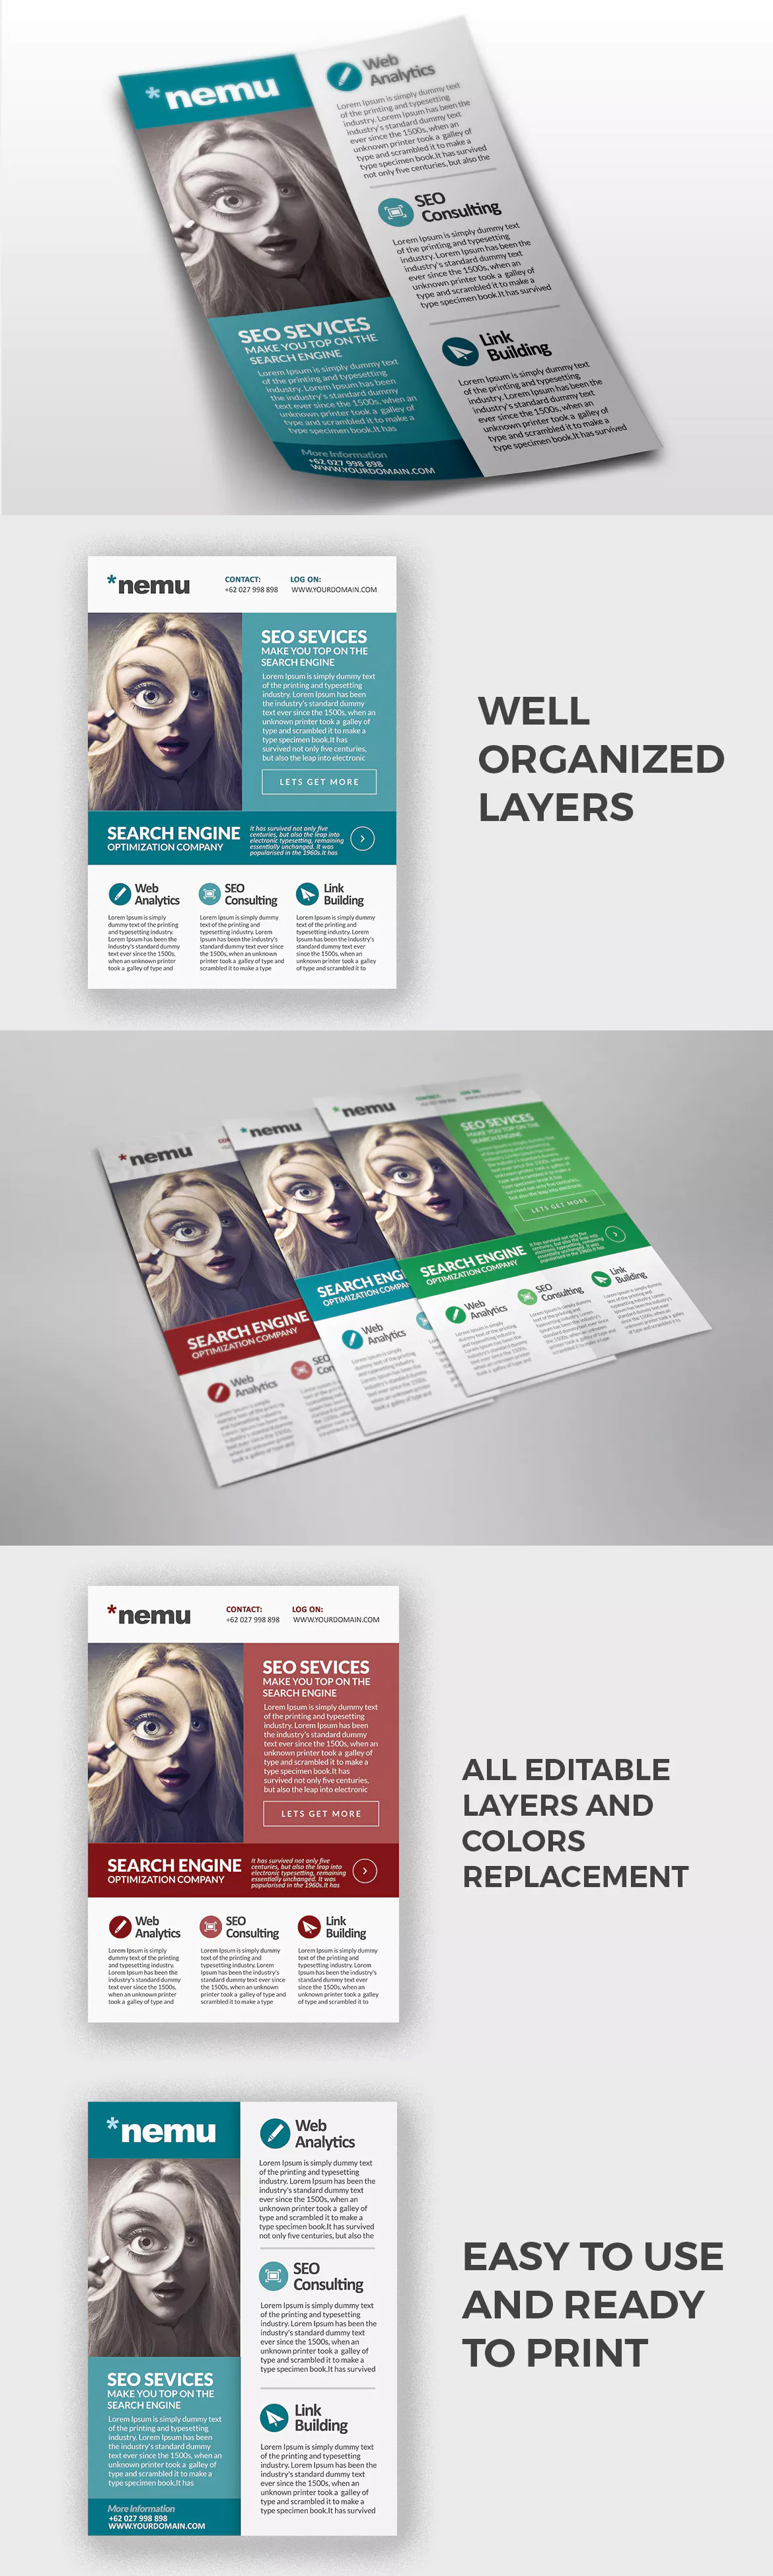 Seo Promo Flyer Template Psd Flyer Templates Pinterest Flyer